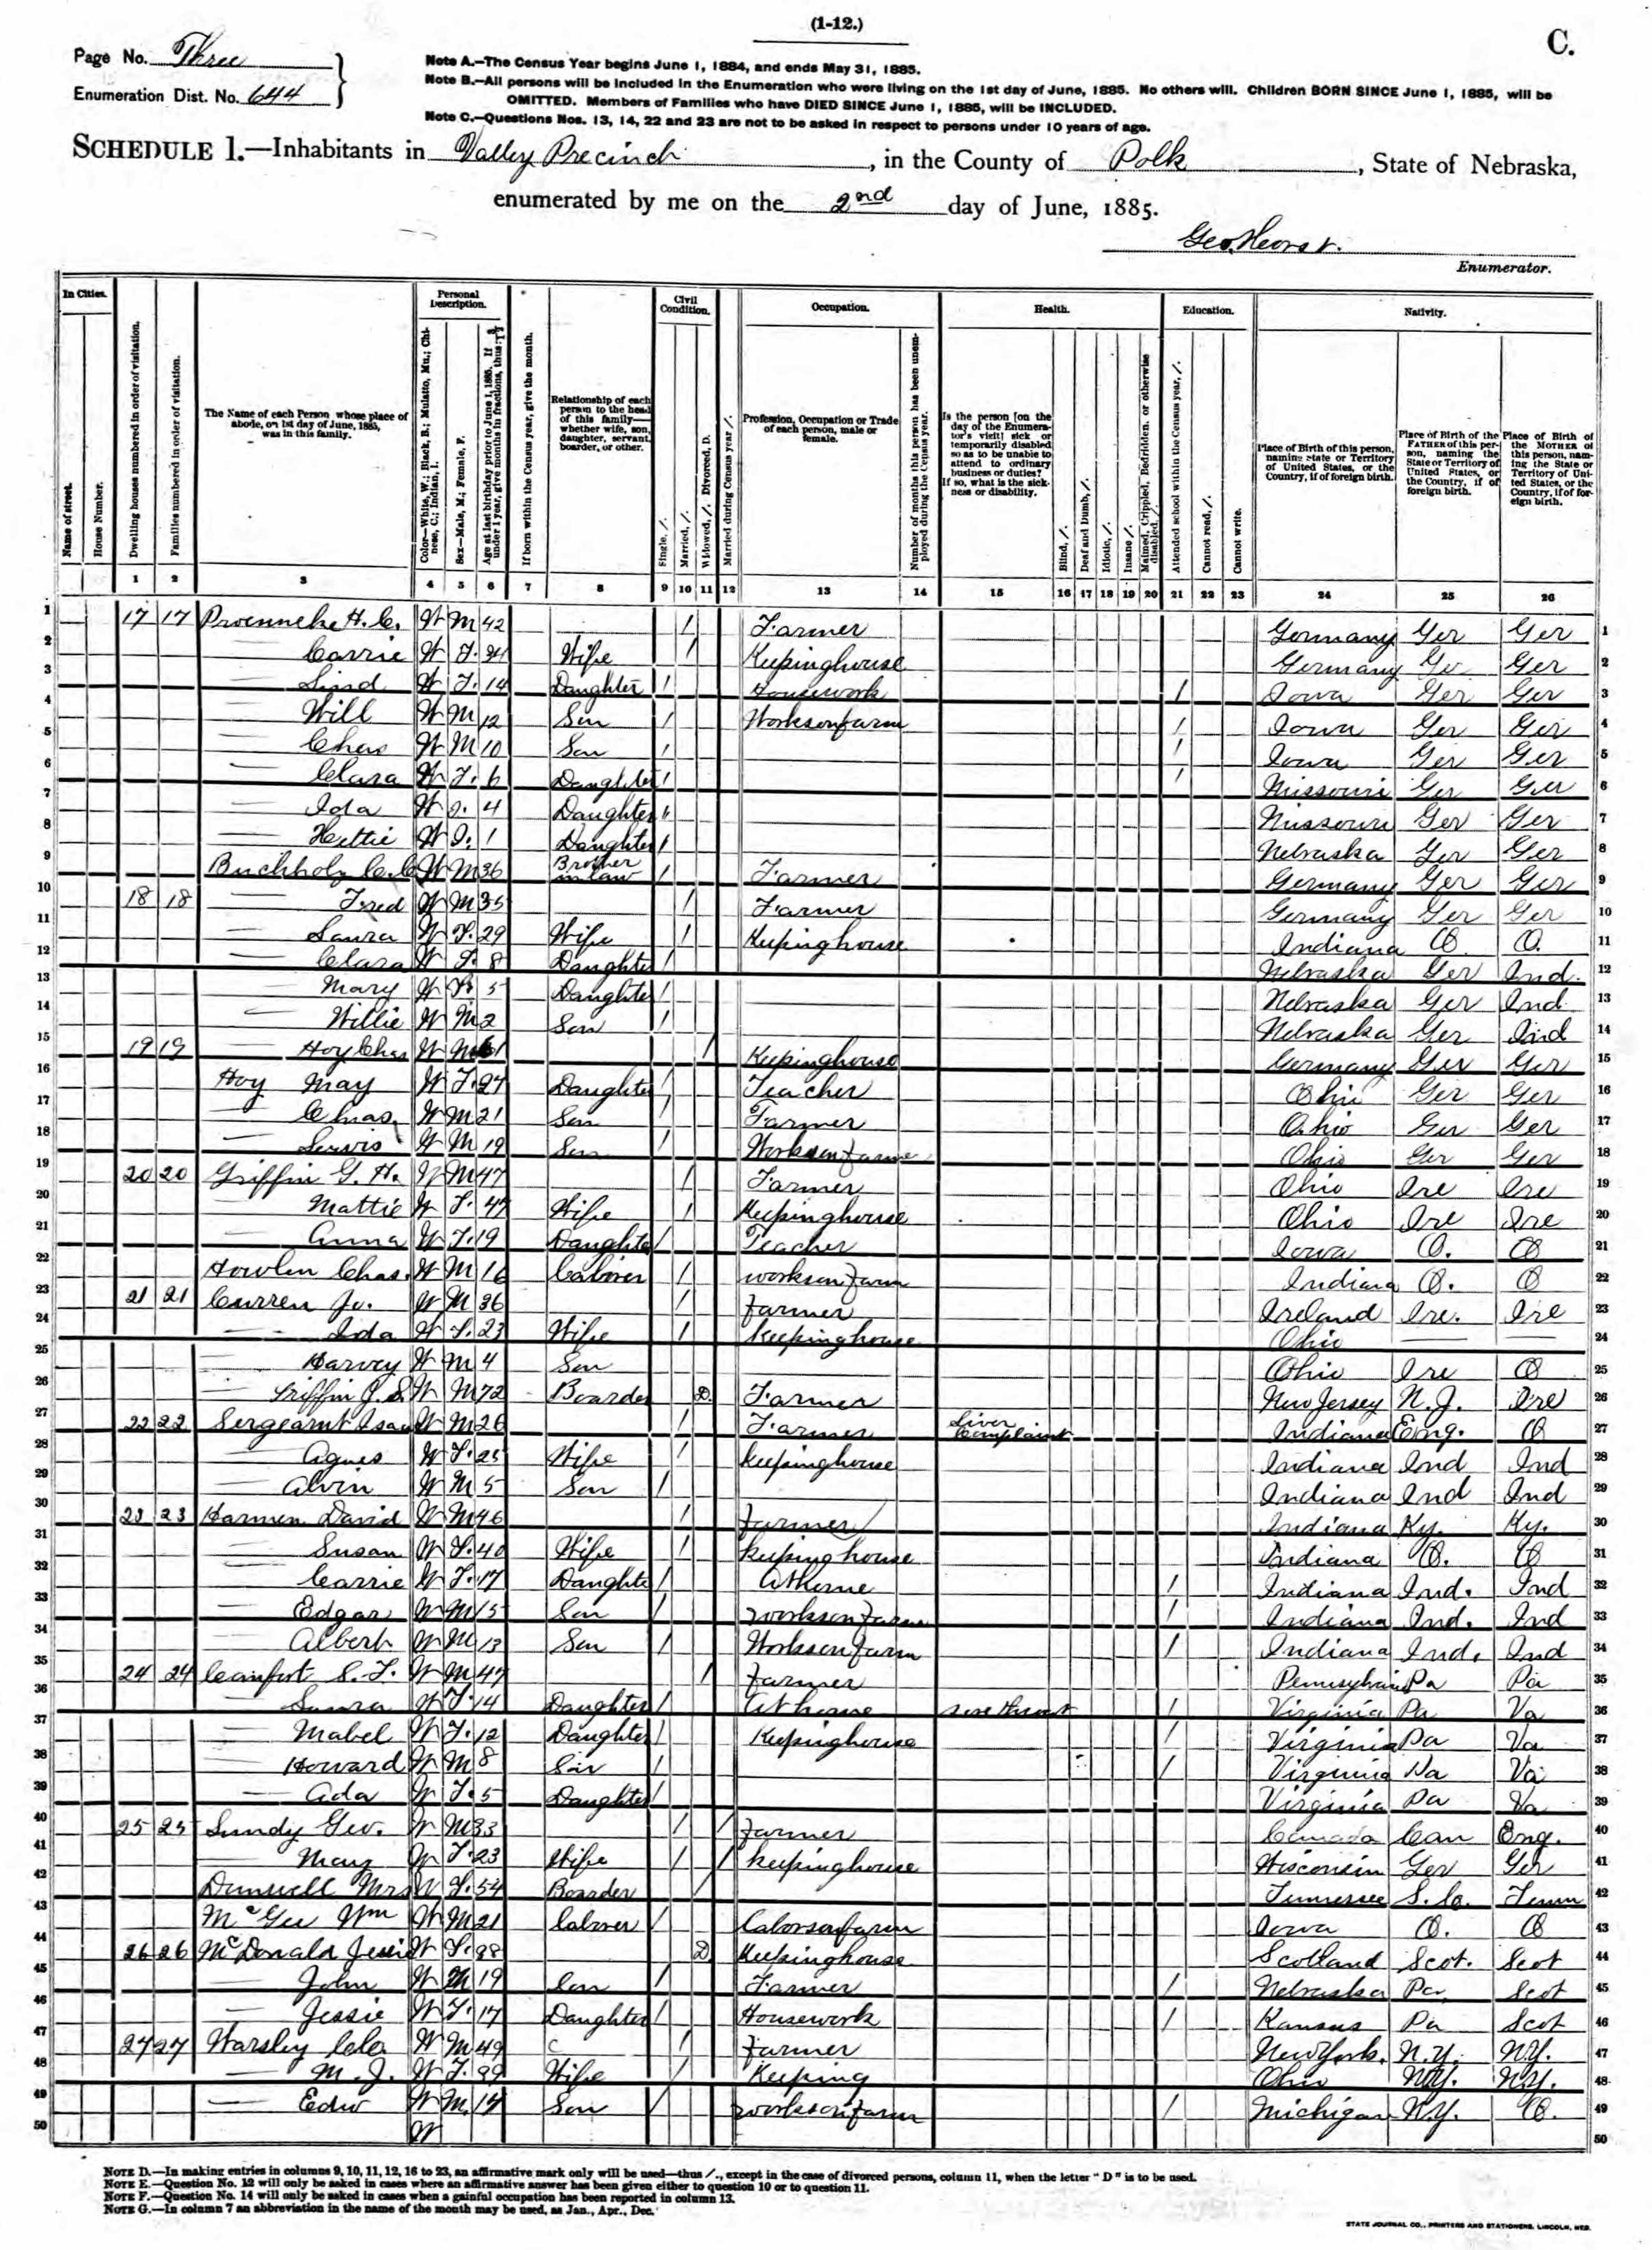 1885 Nebraska Census